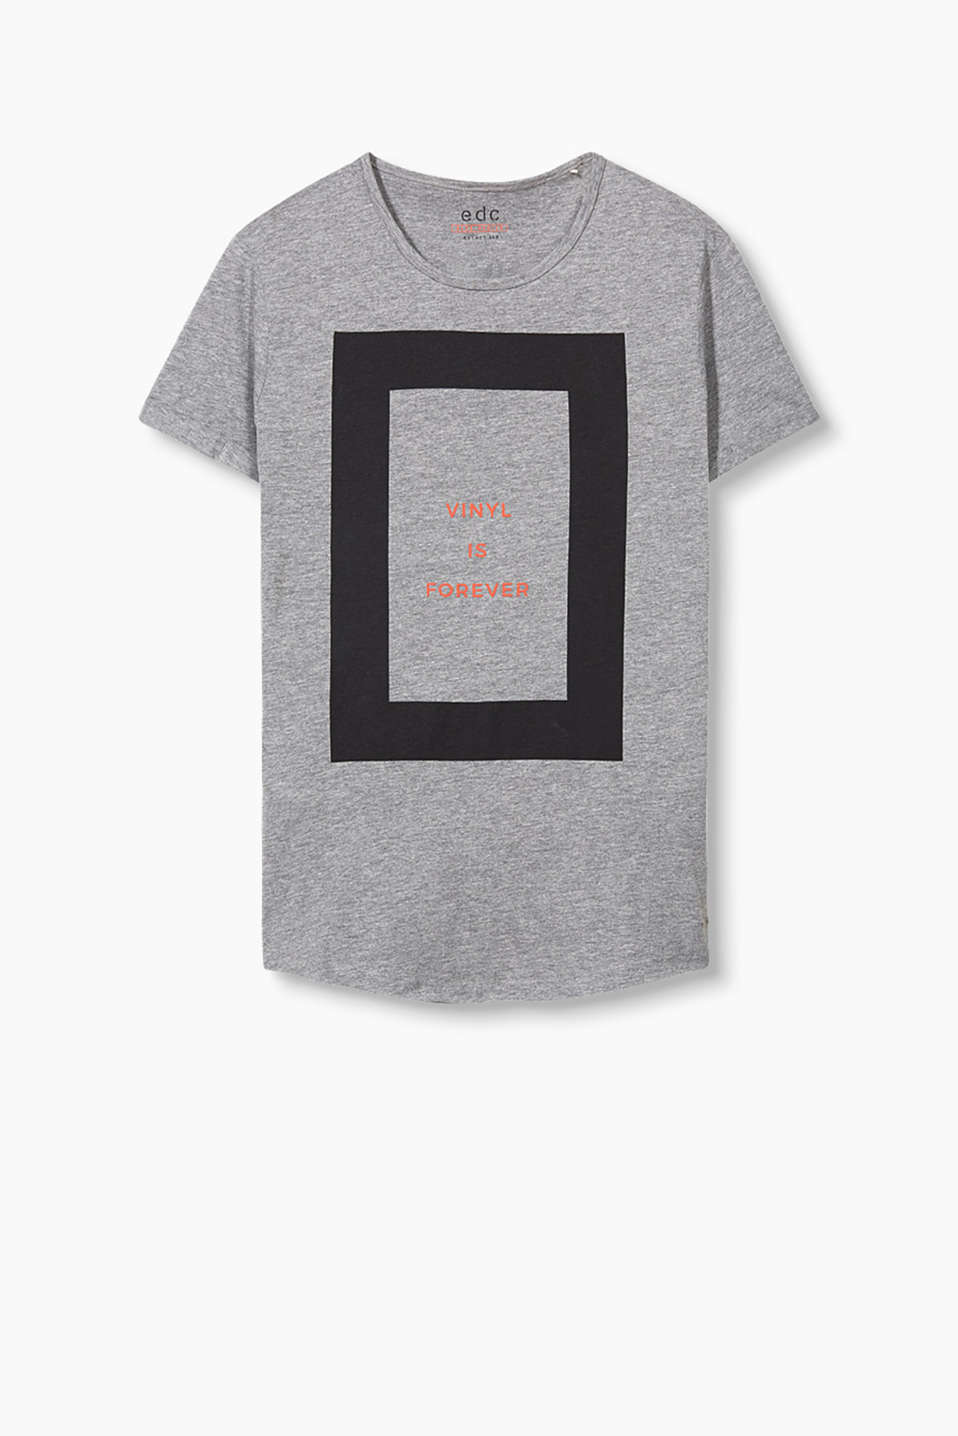 T-shirt with a graphic print and statement in 100% cotton